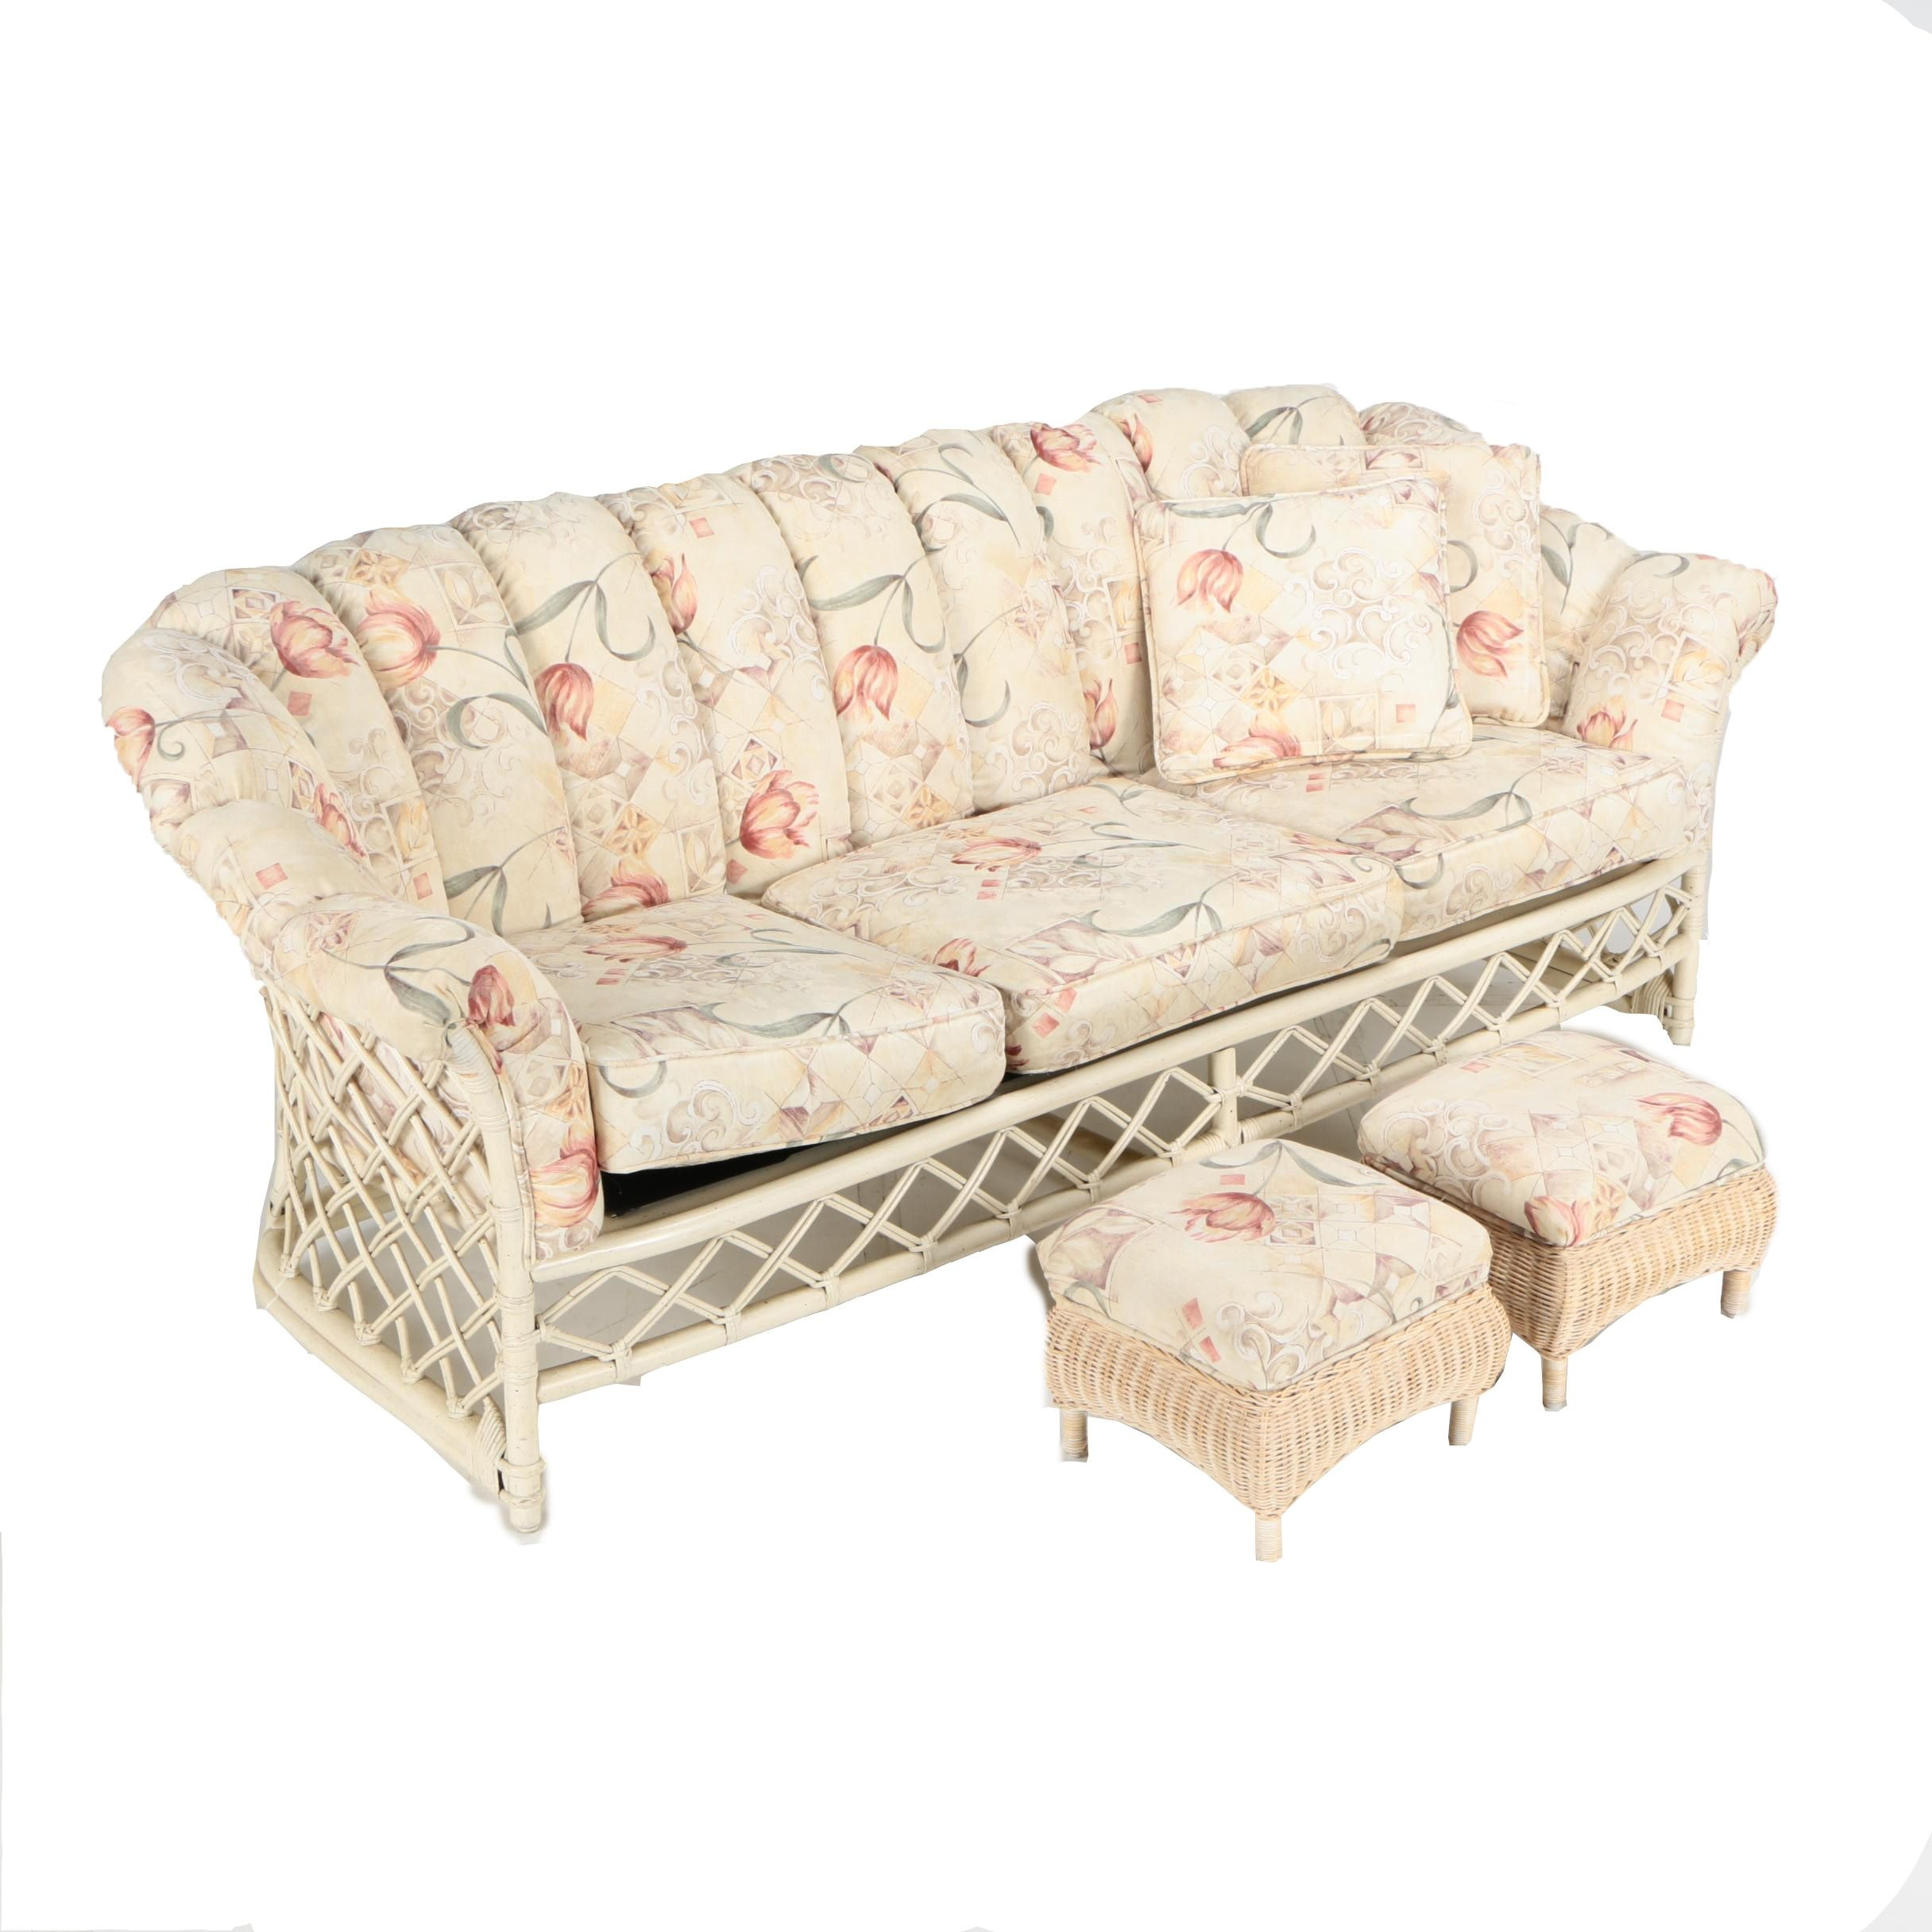 Vintage Rattan Sofa and Upholstered Footstools by Ficks Reed